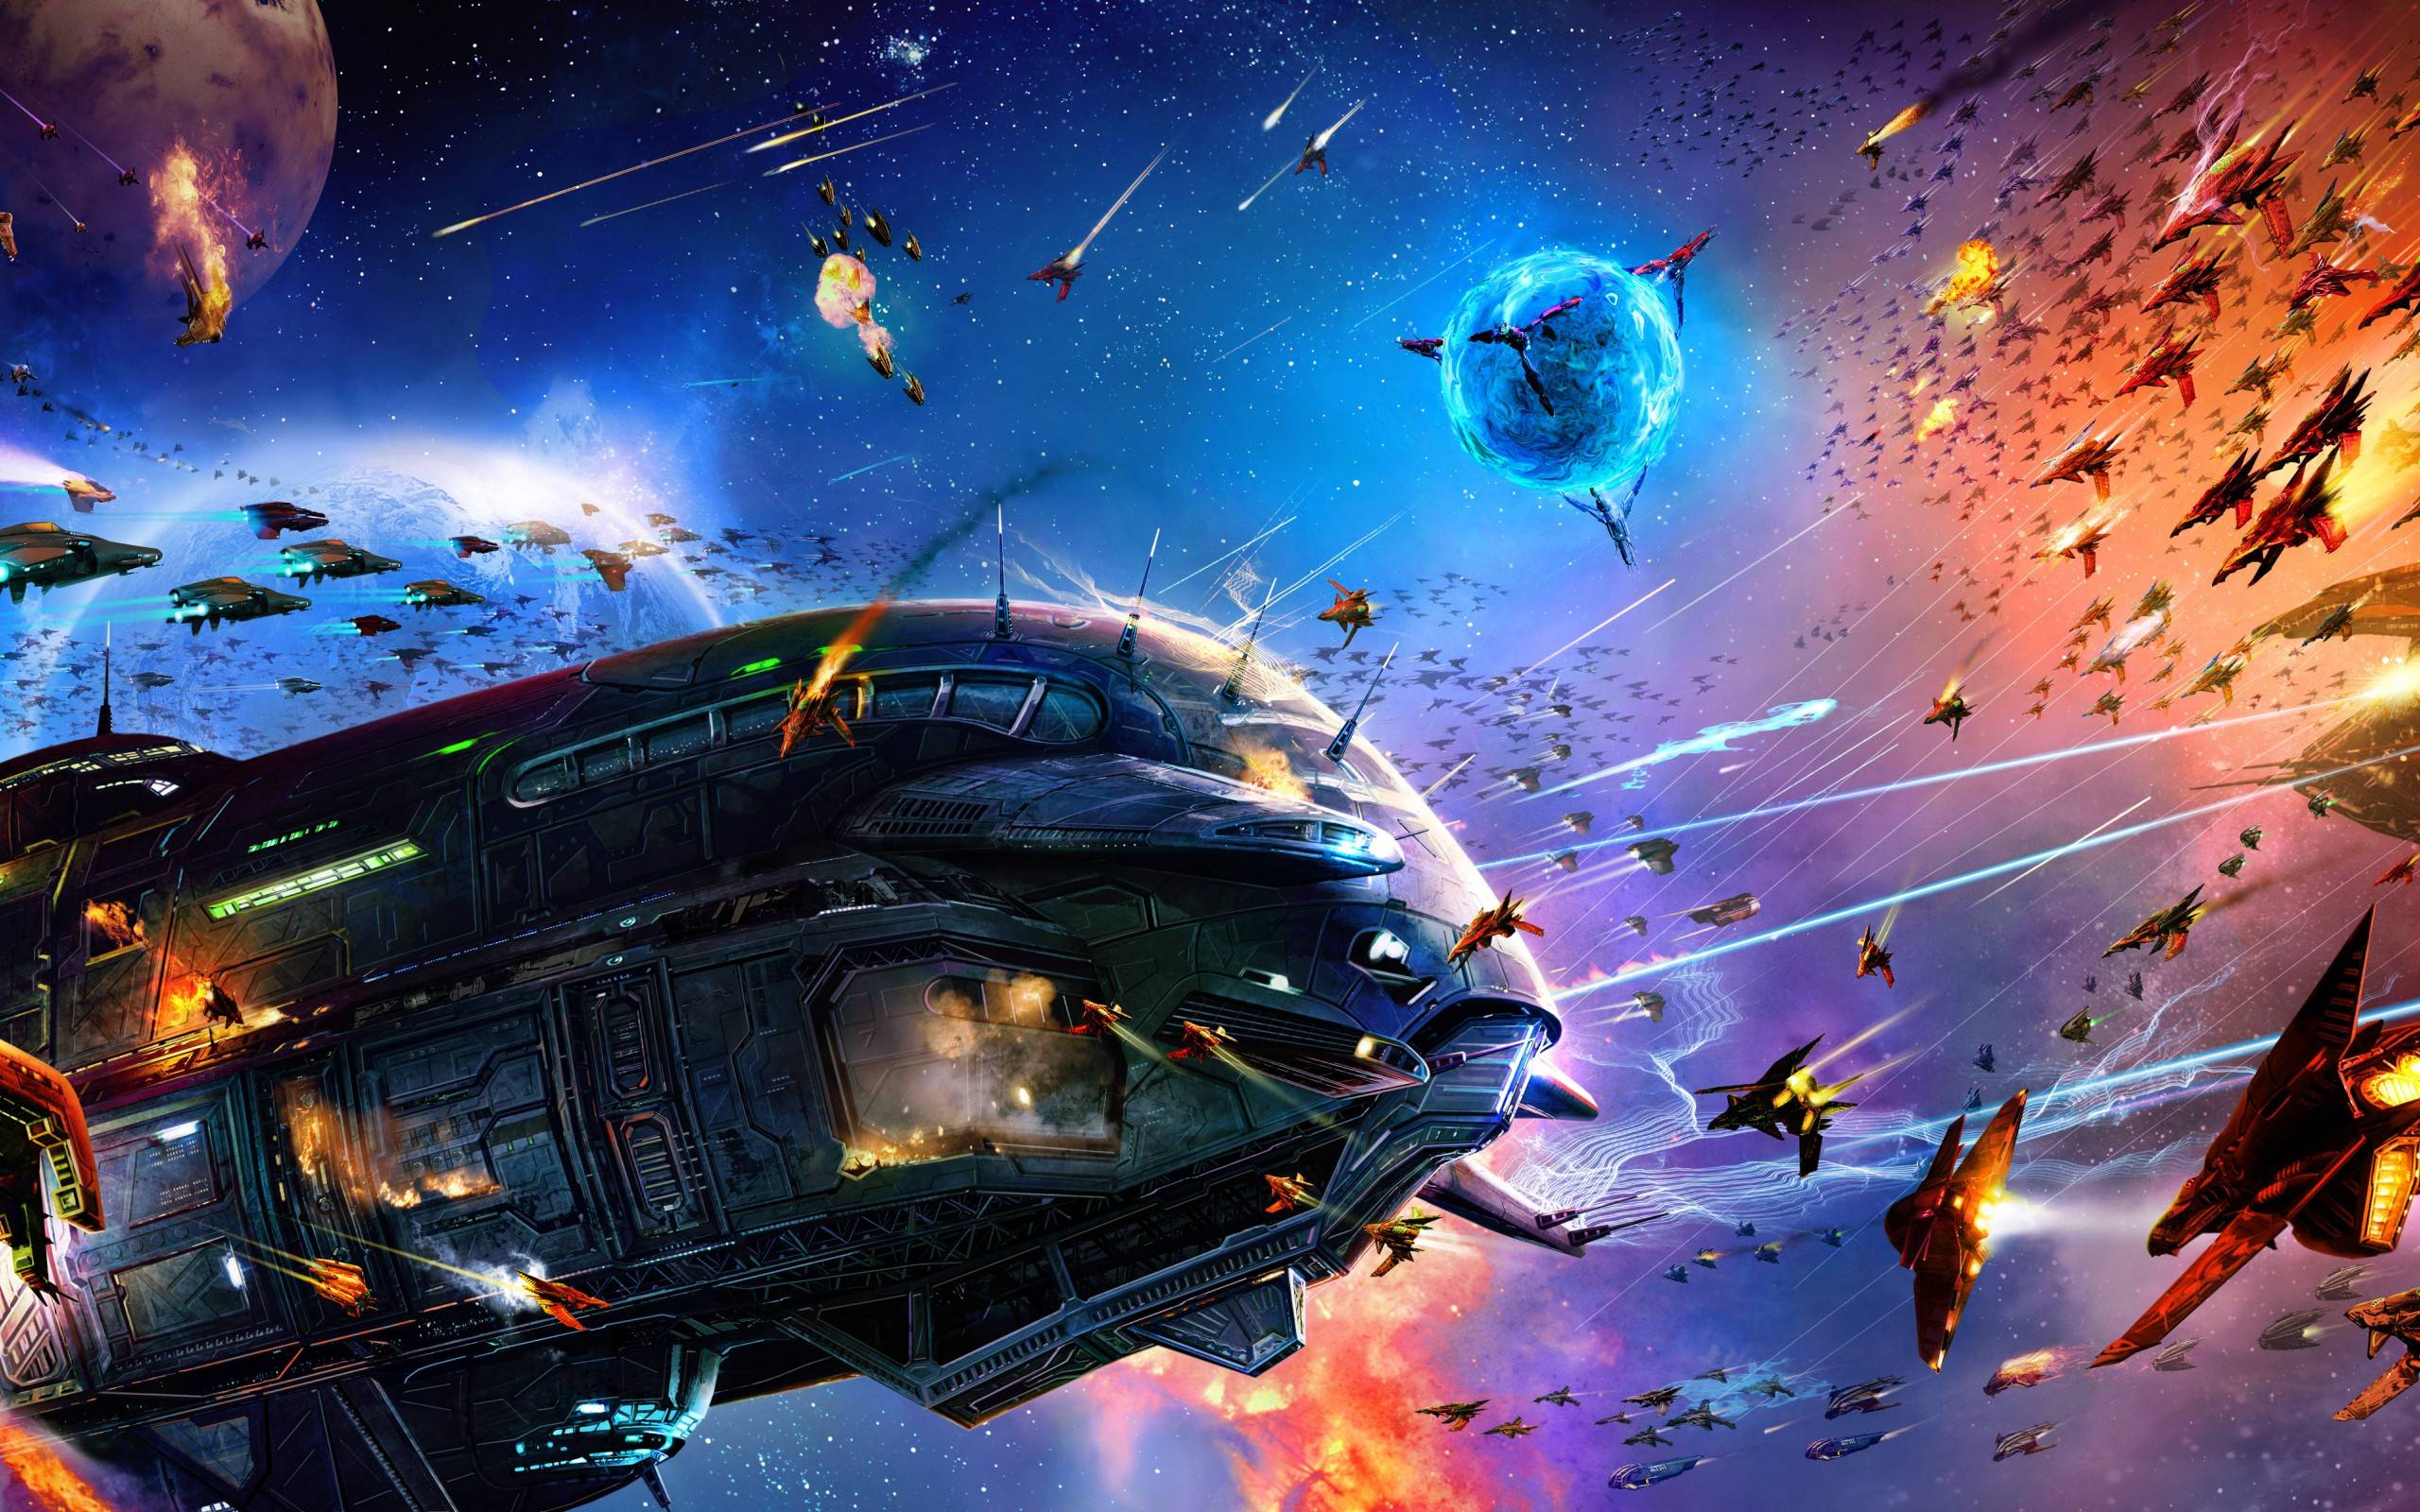 Spaceship Backgrounds - Wallpaper Cave